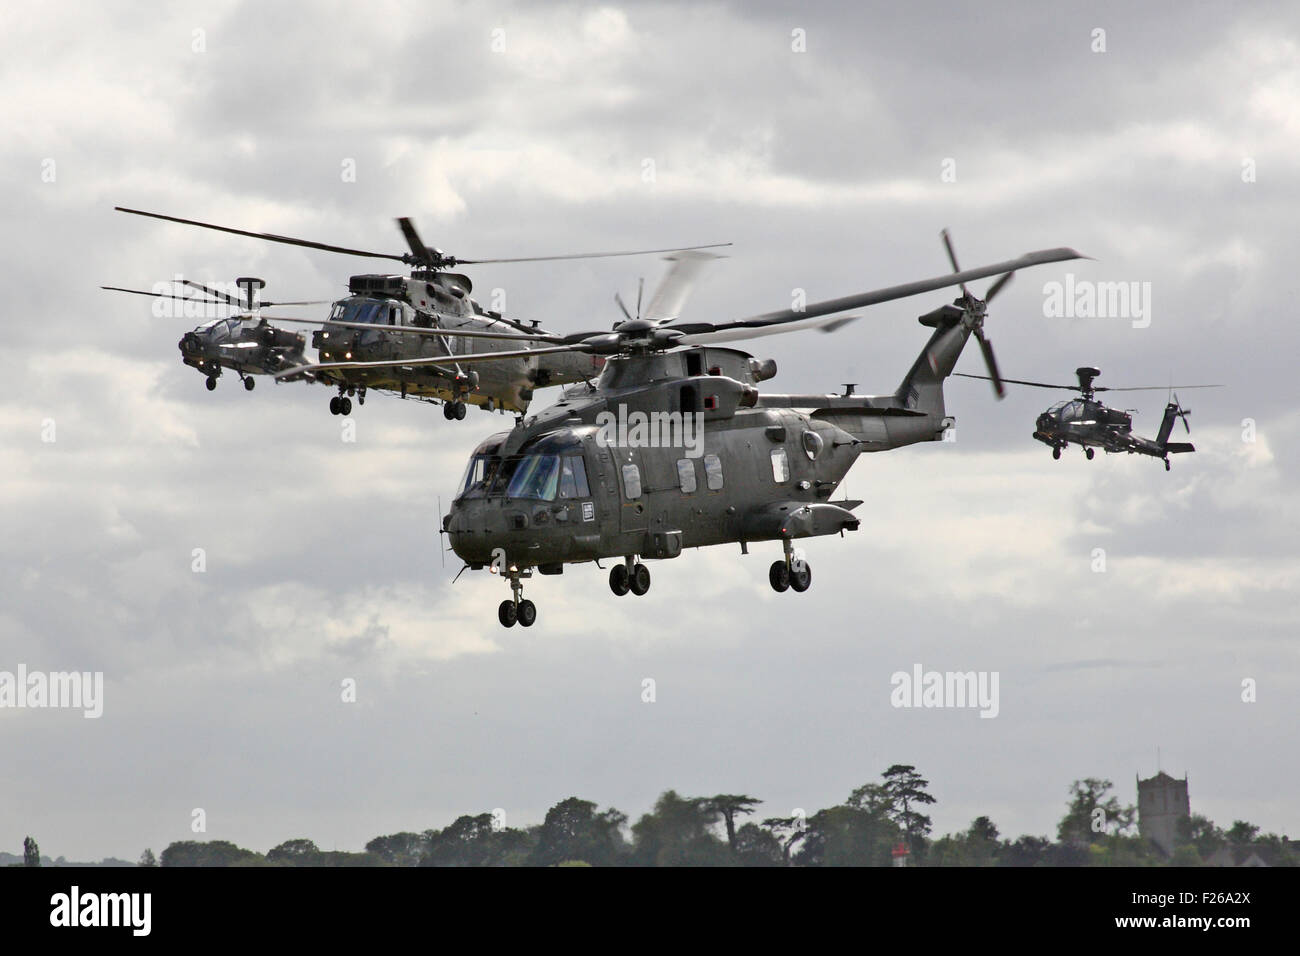 An Agusta Westland Merlin HC Mk 3 from 846 NAS with a Sea King H C MK 4 from 848 NAS with a pair of Army Air Corps - Stock Image